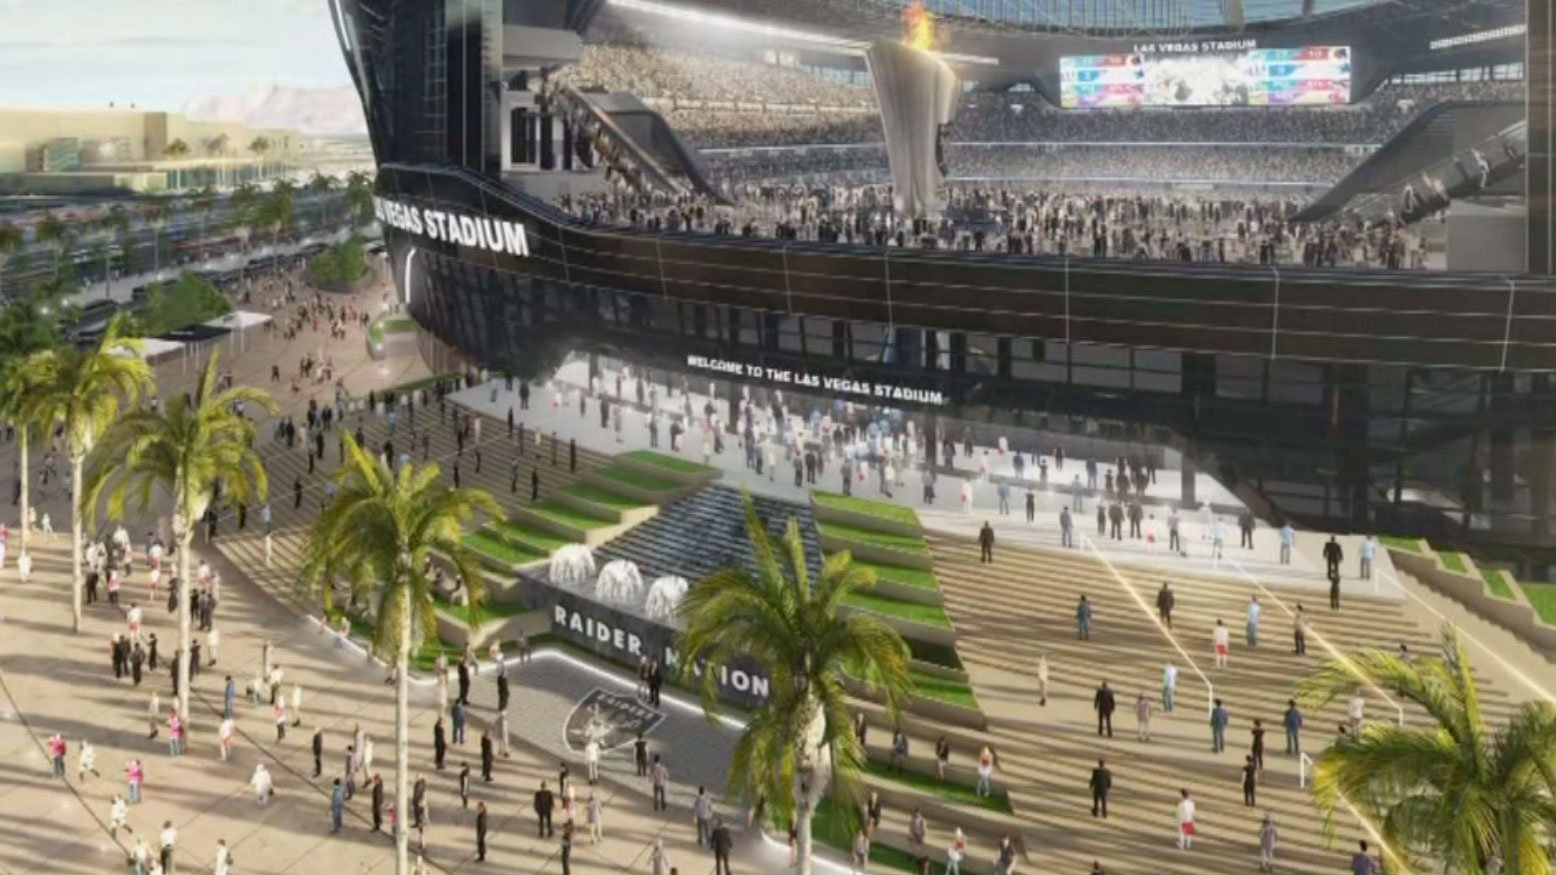 A new rendering of the Raider's stadium was shown at a meeting on Aug. 17, 2017. (Eric Hilt/FOX5)